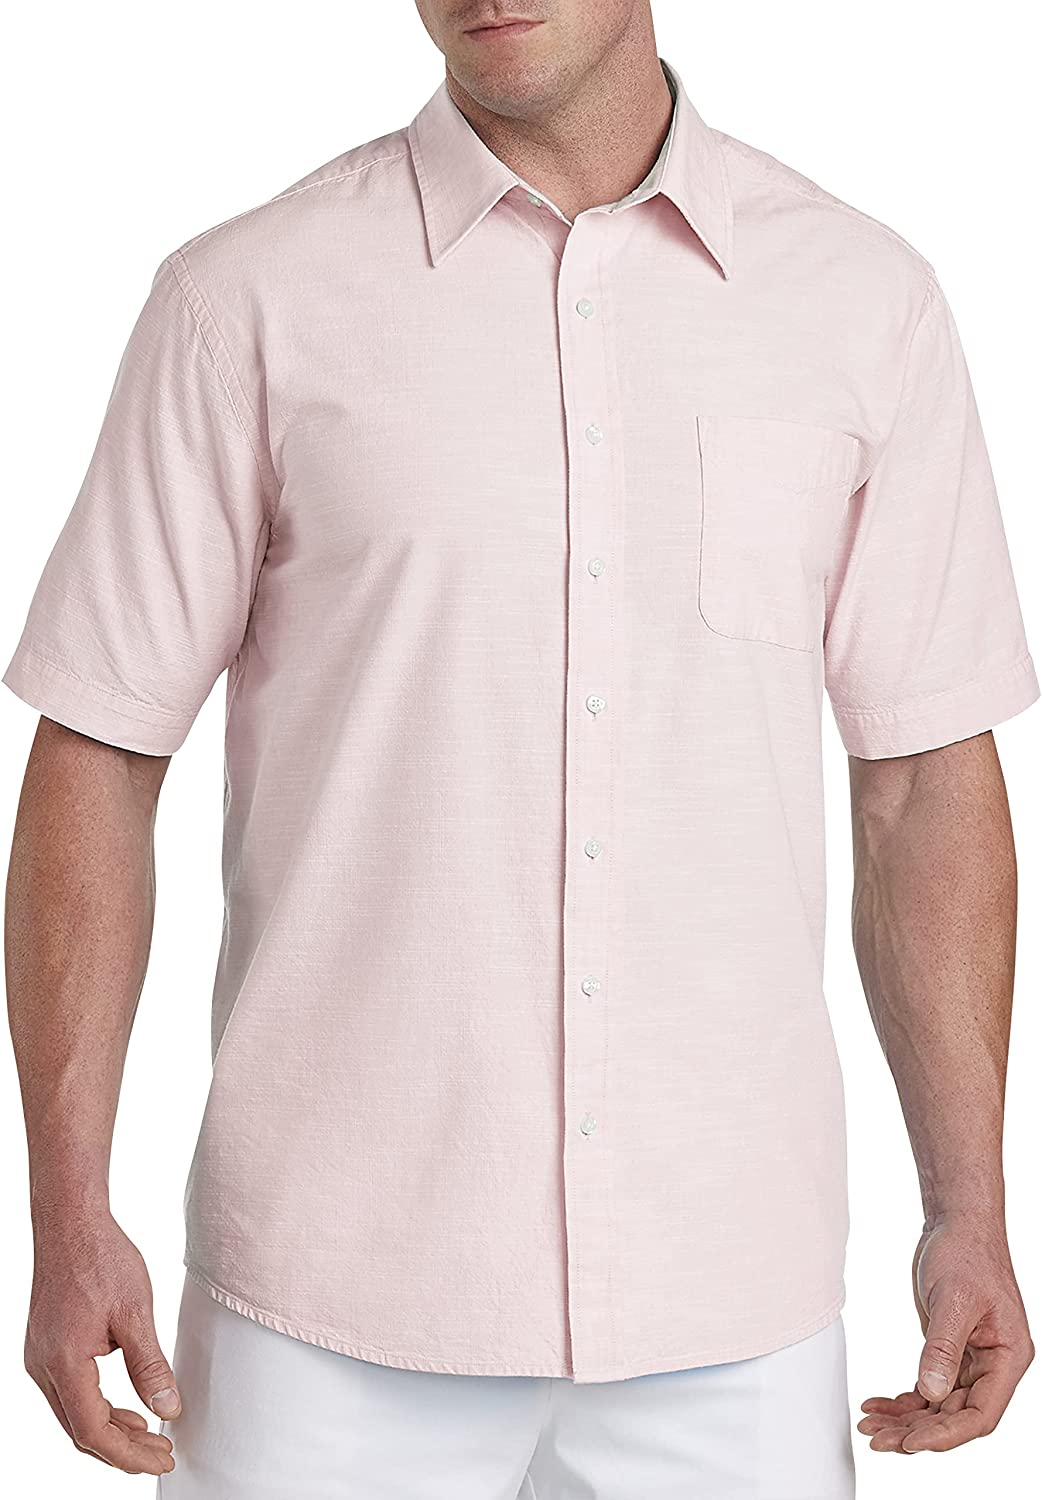 Oak Hill by DXL Big and Tall Washed Cotton Sport Shirt